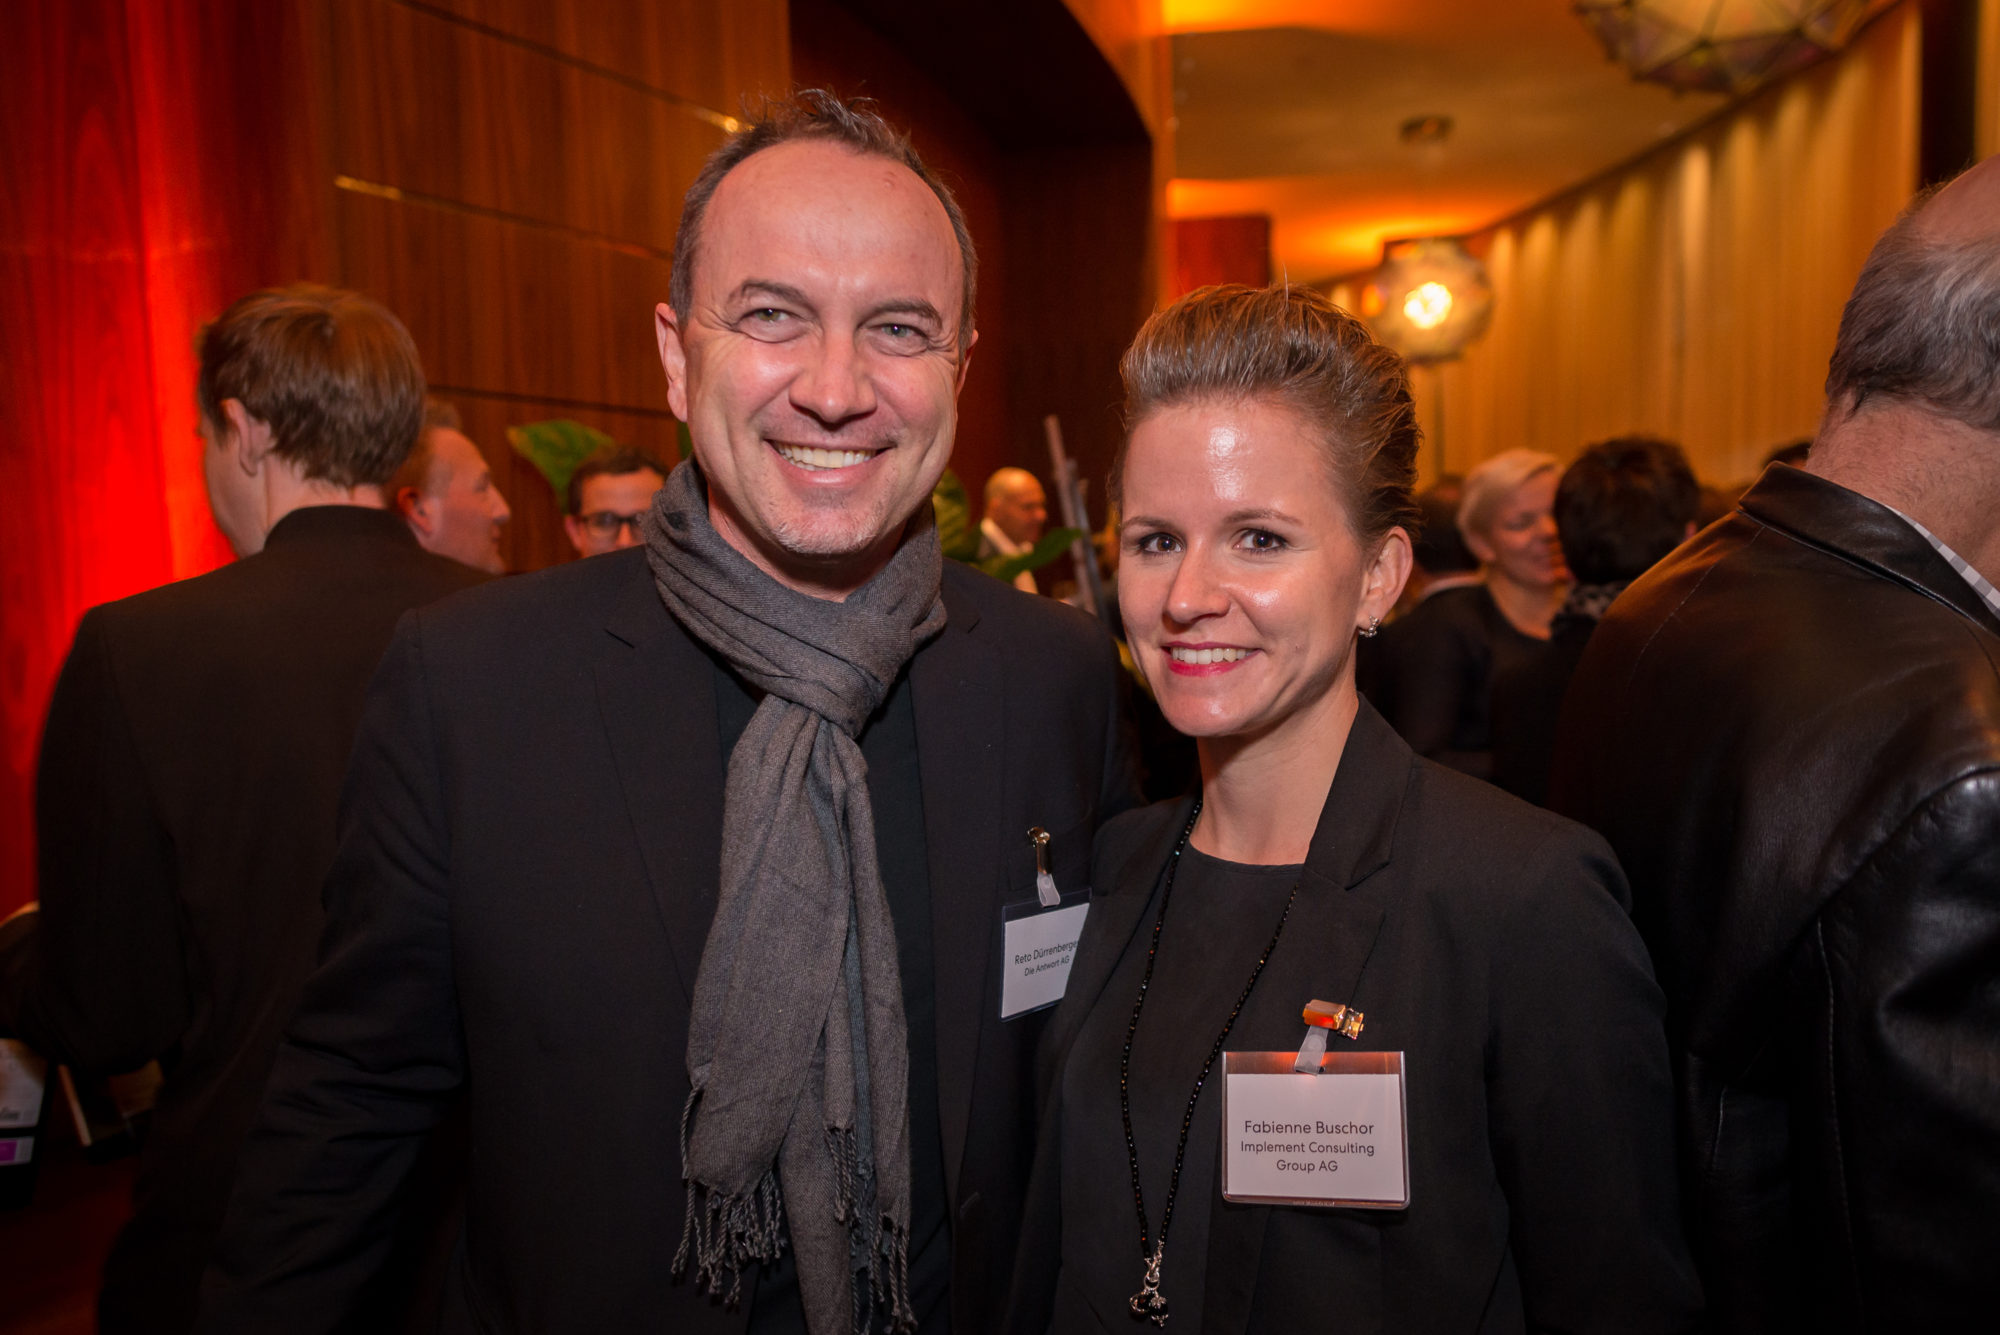 Reto Dürrenberger (Die Antwort AG), Fabienne Buschor (Implement Consulting Group AG)